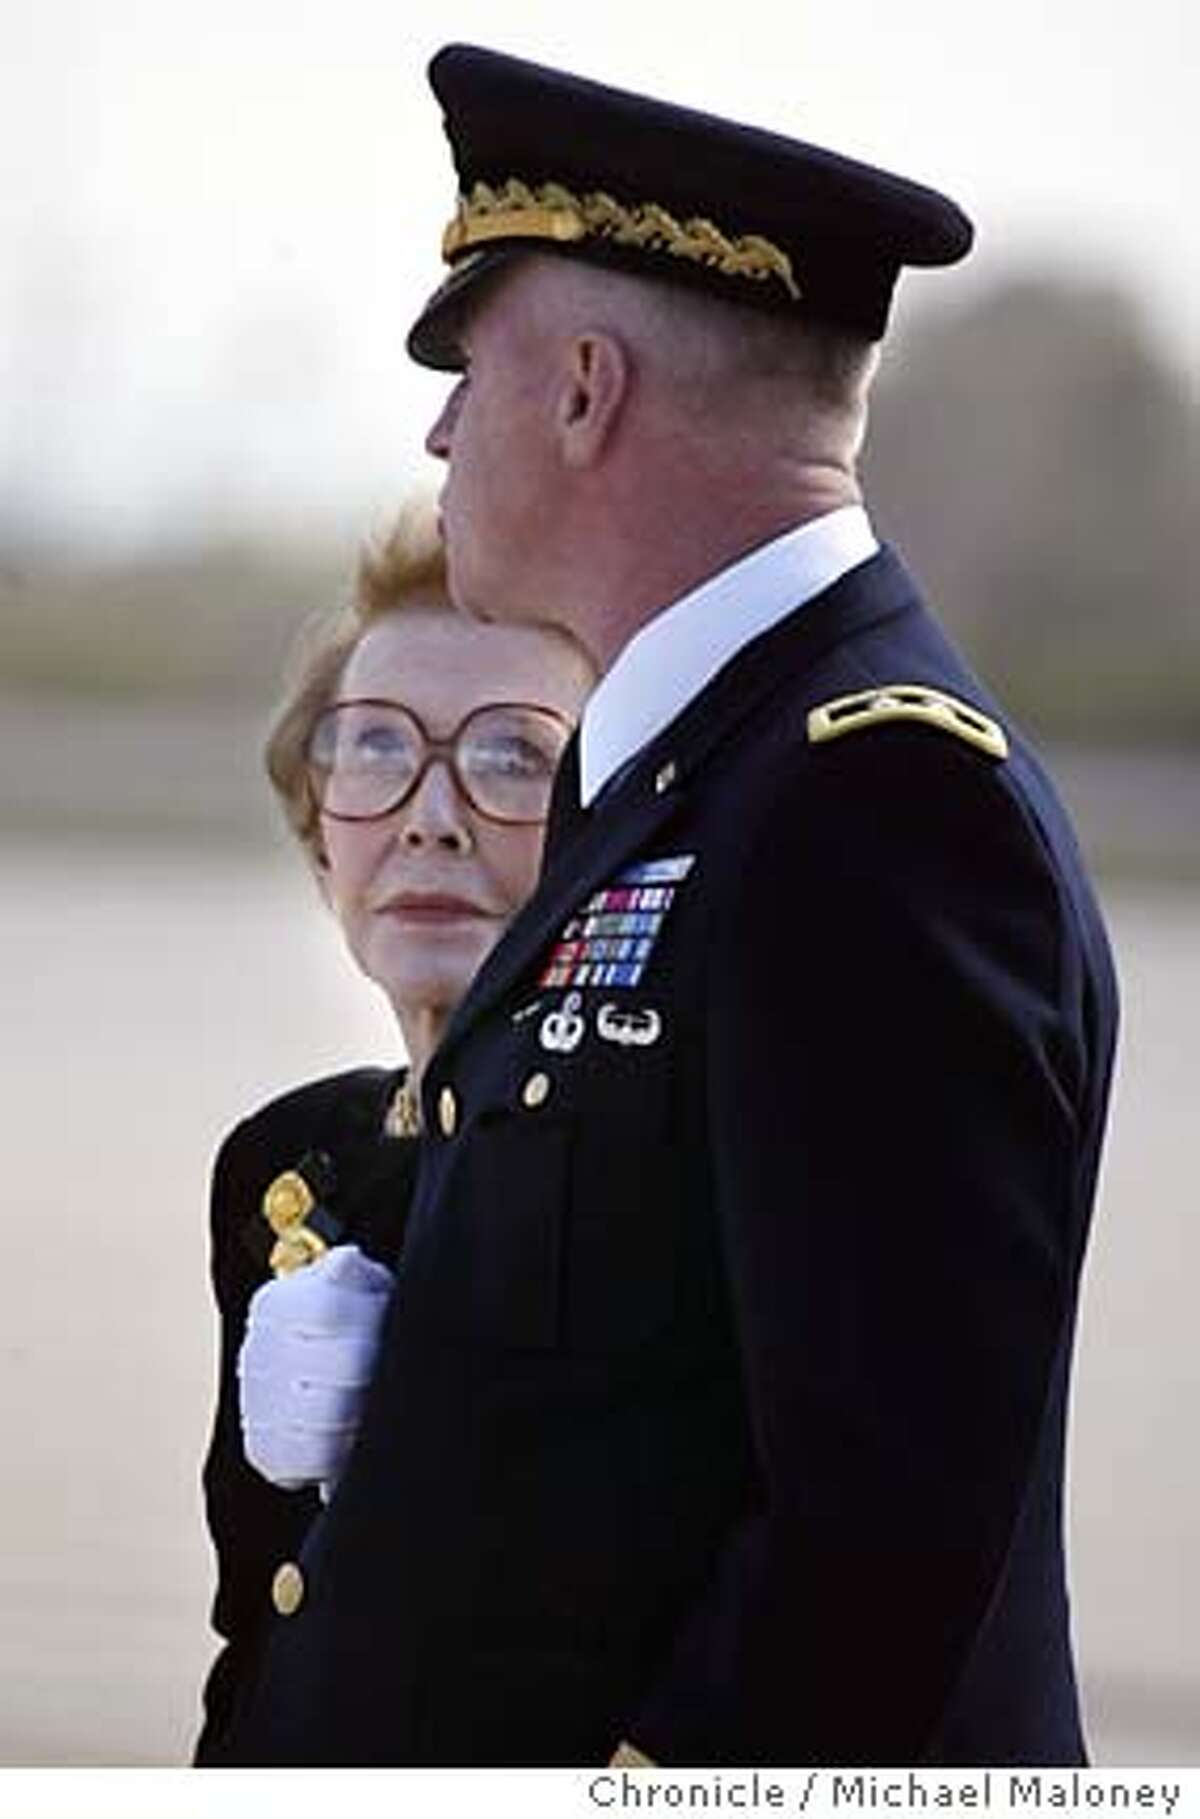 Former First Lady Nancy Reagan and Maj. Gen. Galen B. Jackman, Commanding General, US Army Military District of Washington, Washington, DC. wait as the casket is removed from the hearse. The casket of former President Ronald Reagan along with his family departed Naval Base Ventura County in Point Mugu on a presidential aircraft, enroute to Andrews Air Force Base near Washington DC. After lying in state at the Capitol Rotunda and a national and state funeral ceremonies, the casket will be flown back to the Presidential Library in Simi Valley, CA for burial on Friday. Photo by Michael Maloney / San Francisco Chronicle